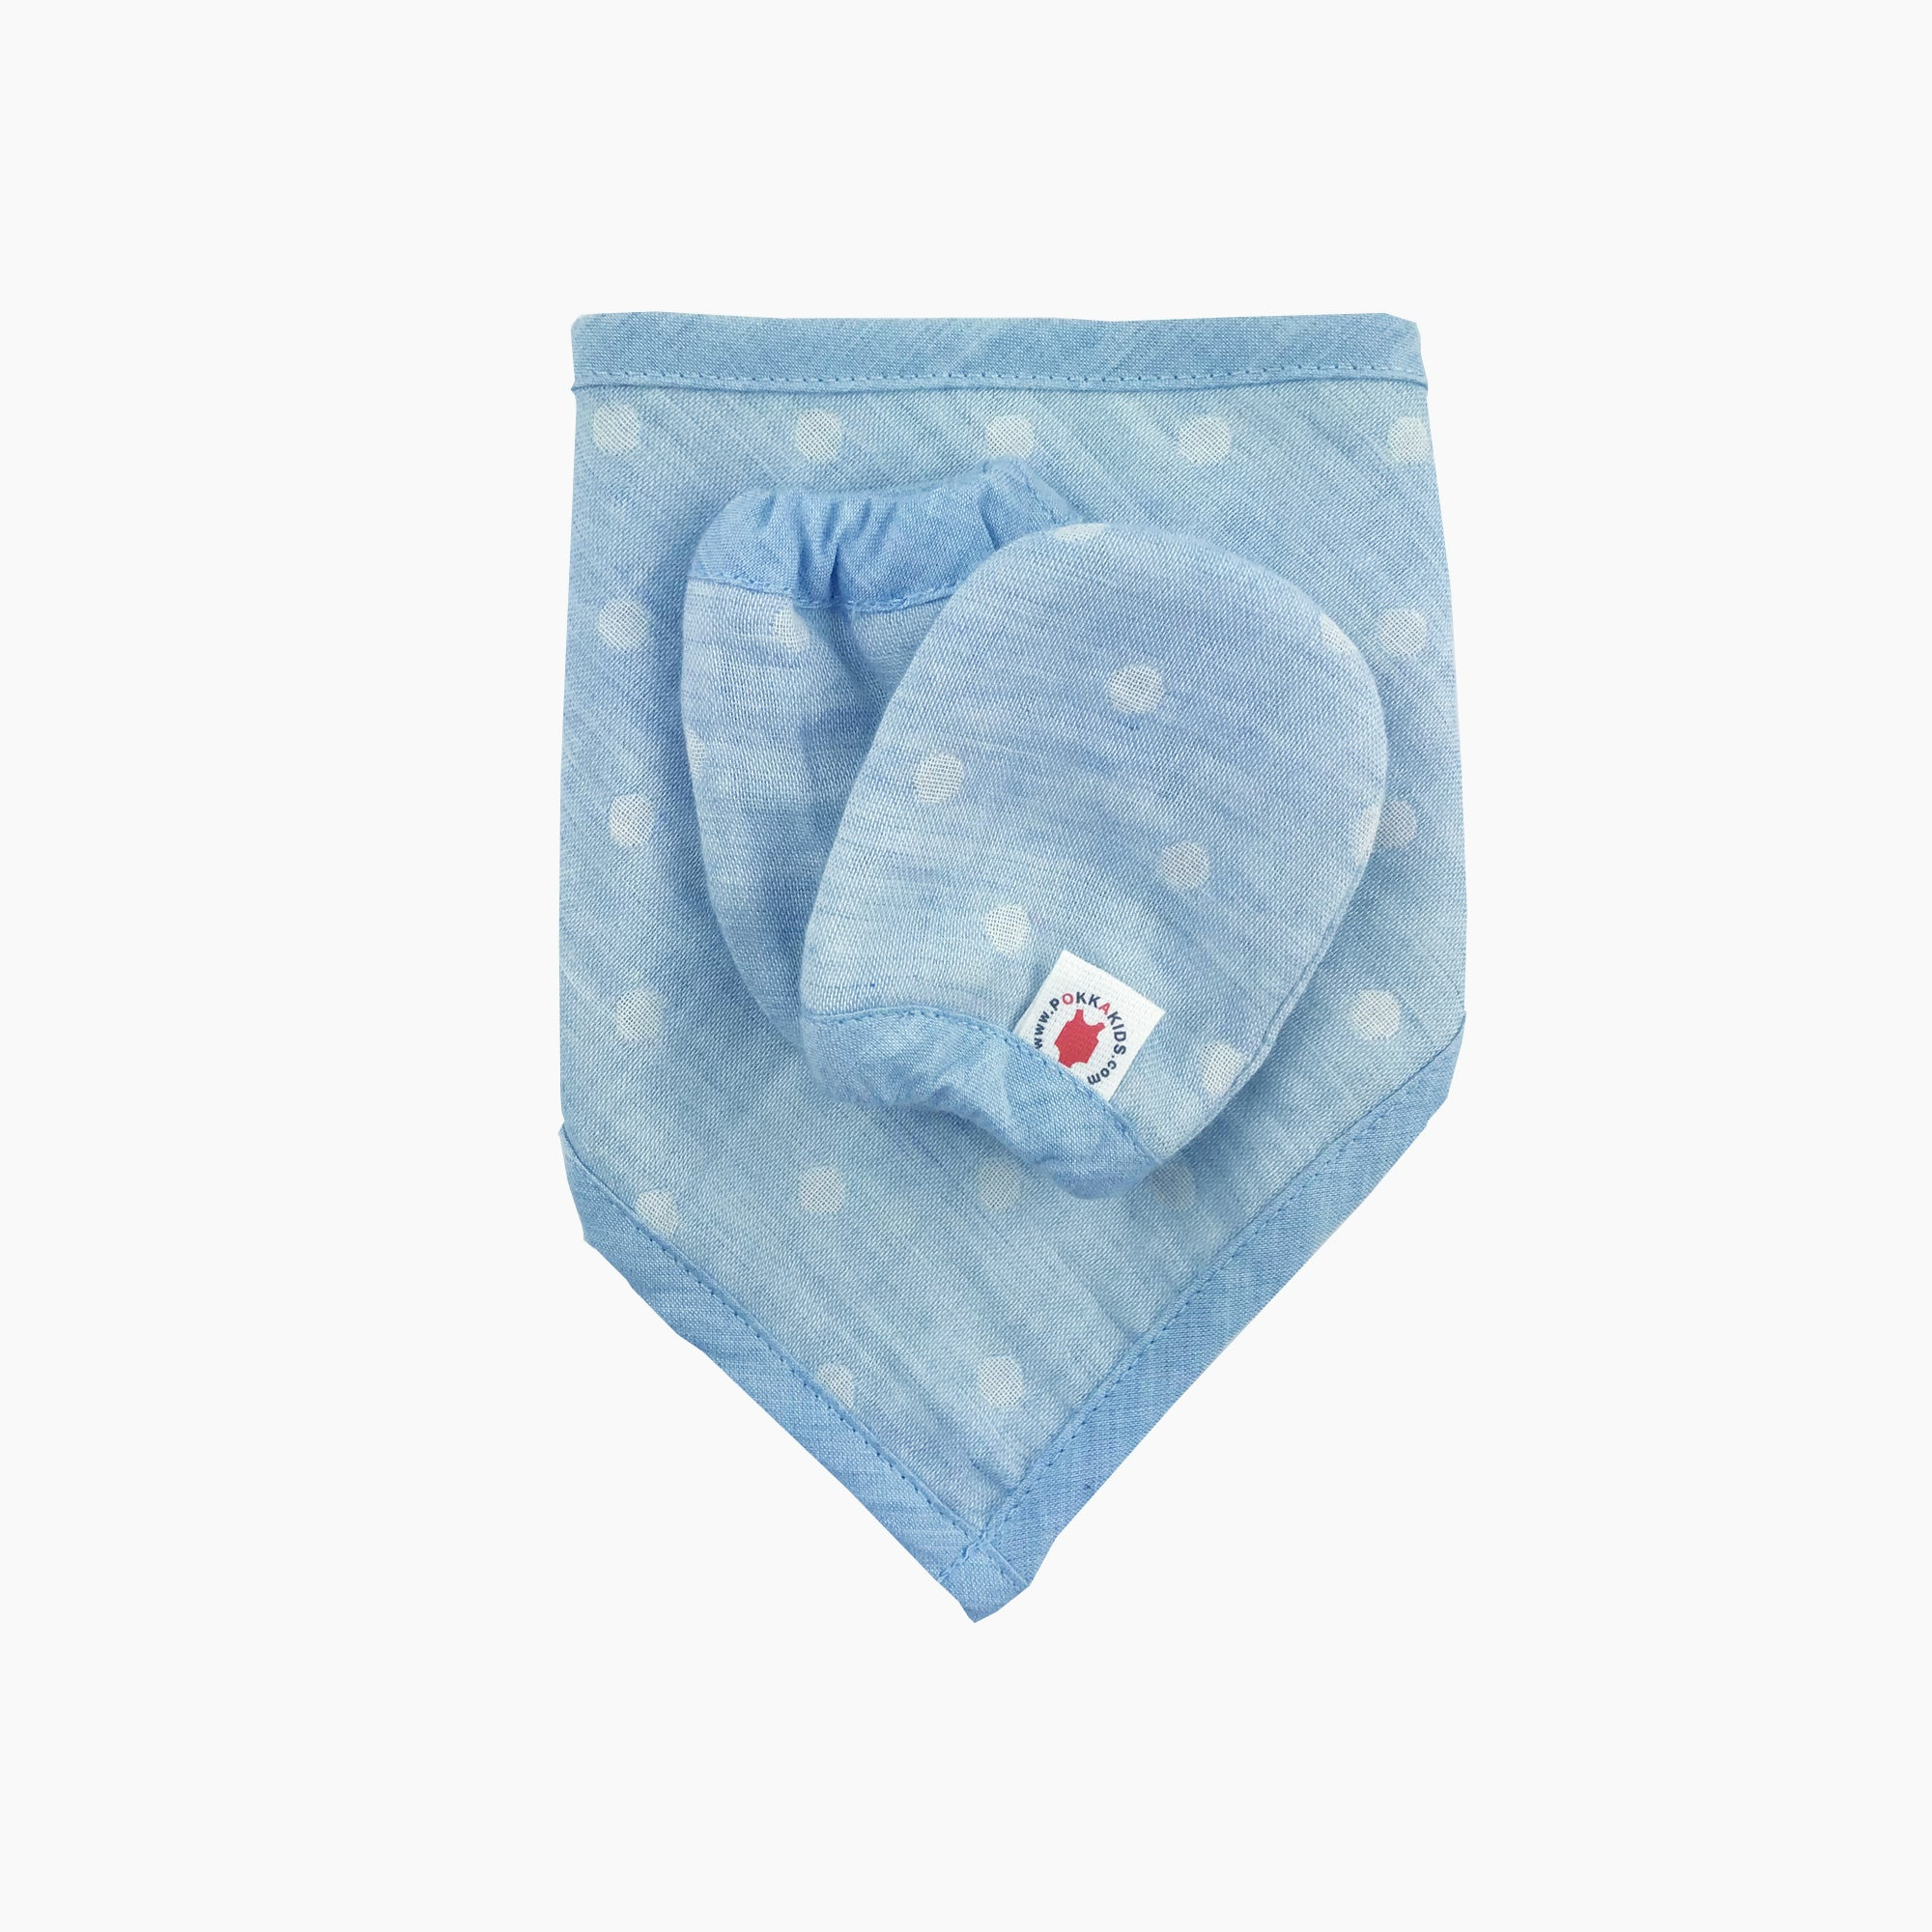 Blue 100 % GOTS certified organic cotton bandana bib and mittens baby gift set made in USA